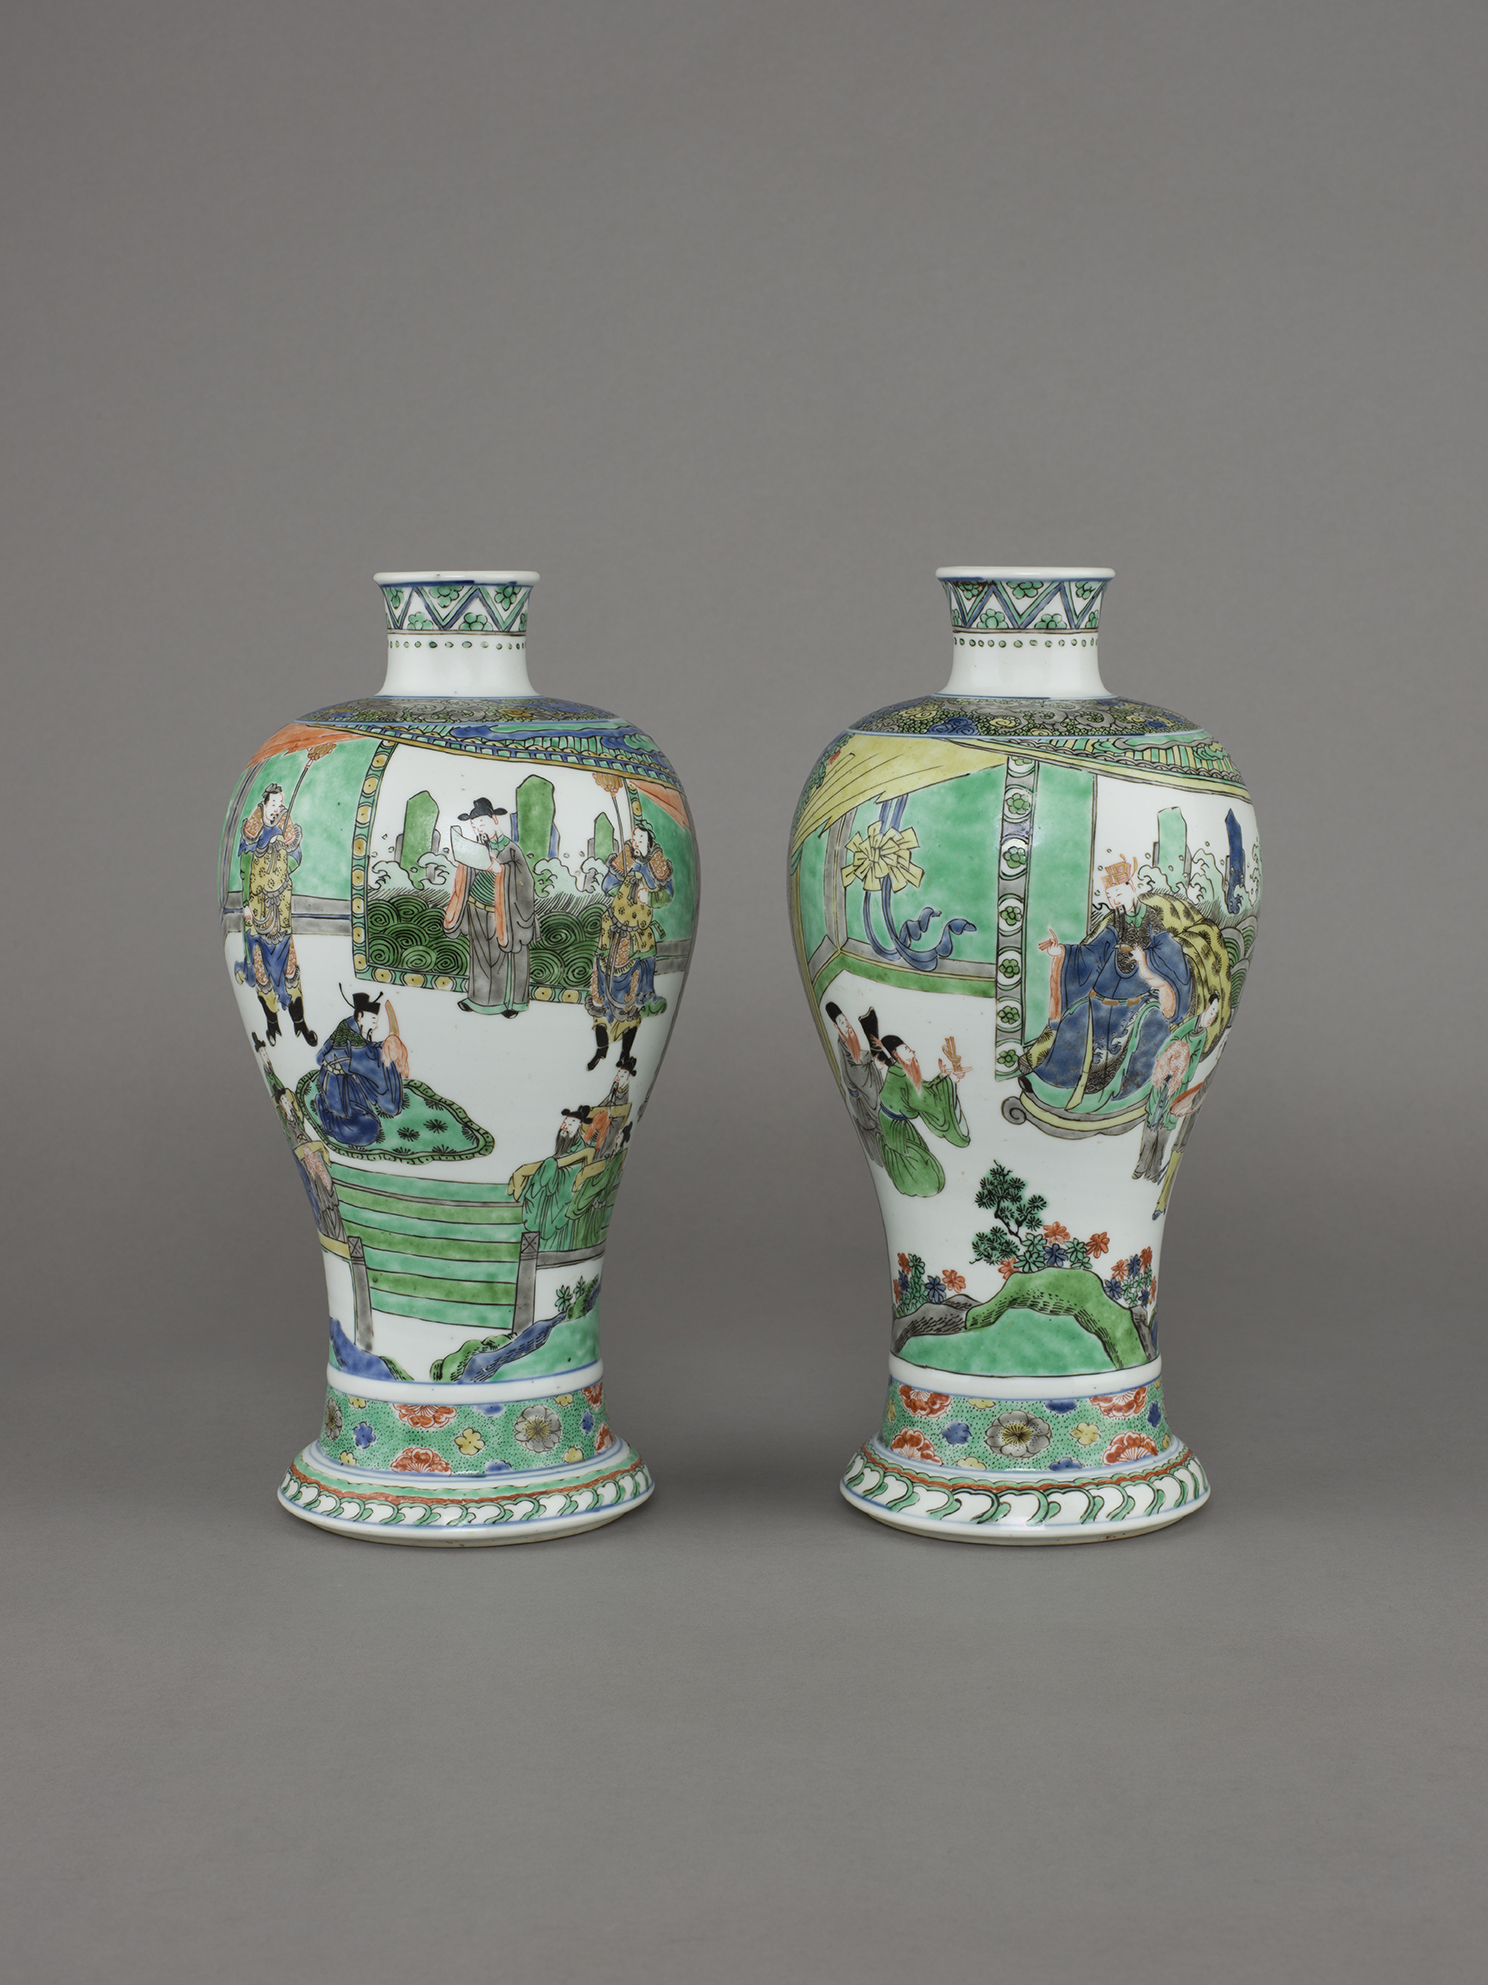 no.8 - Pair of Chinese porcelain famille verte, wucai dated vases of meiping form, each painted with a scene of a provincial governor being reassigned and departing to his assigned post. 12 inches, 30.5 cm high. The bases with four-character marks, xinsi nian zhi, in underglaze blue within a double ring and of the period, corresponding to the xinsi year, 1701.